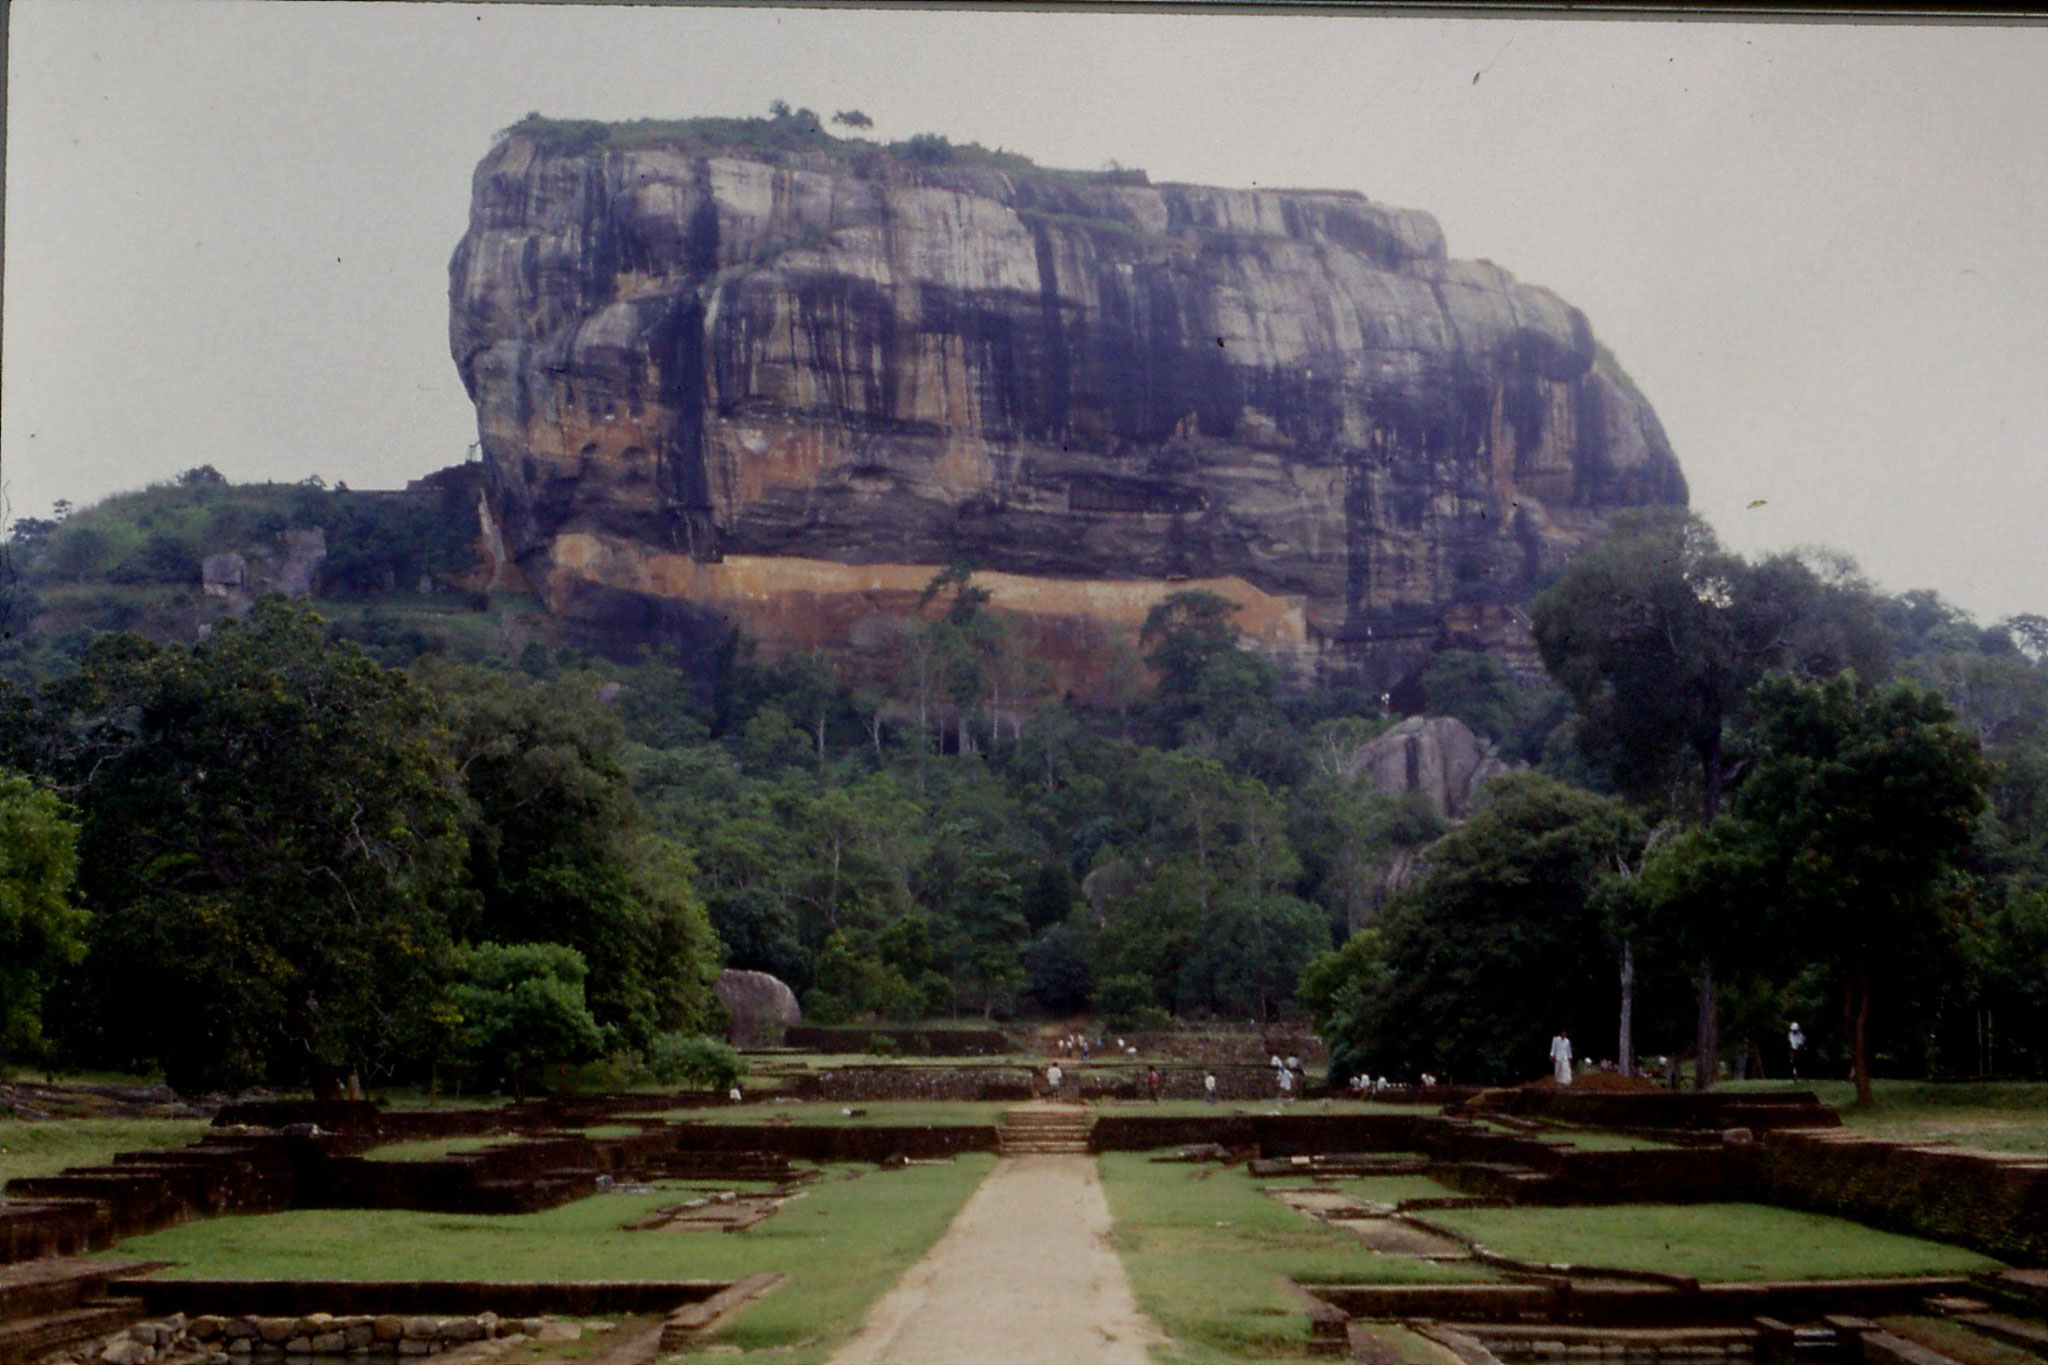 102/31: 7/2/1990 Sigiriya - rock and summer palace gardens in foreground